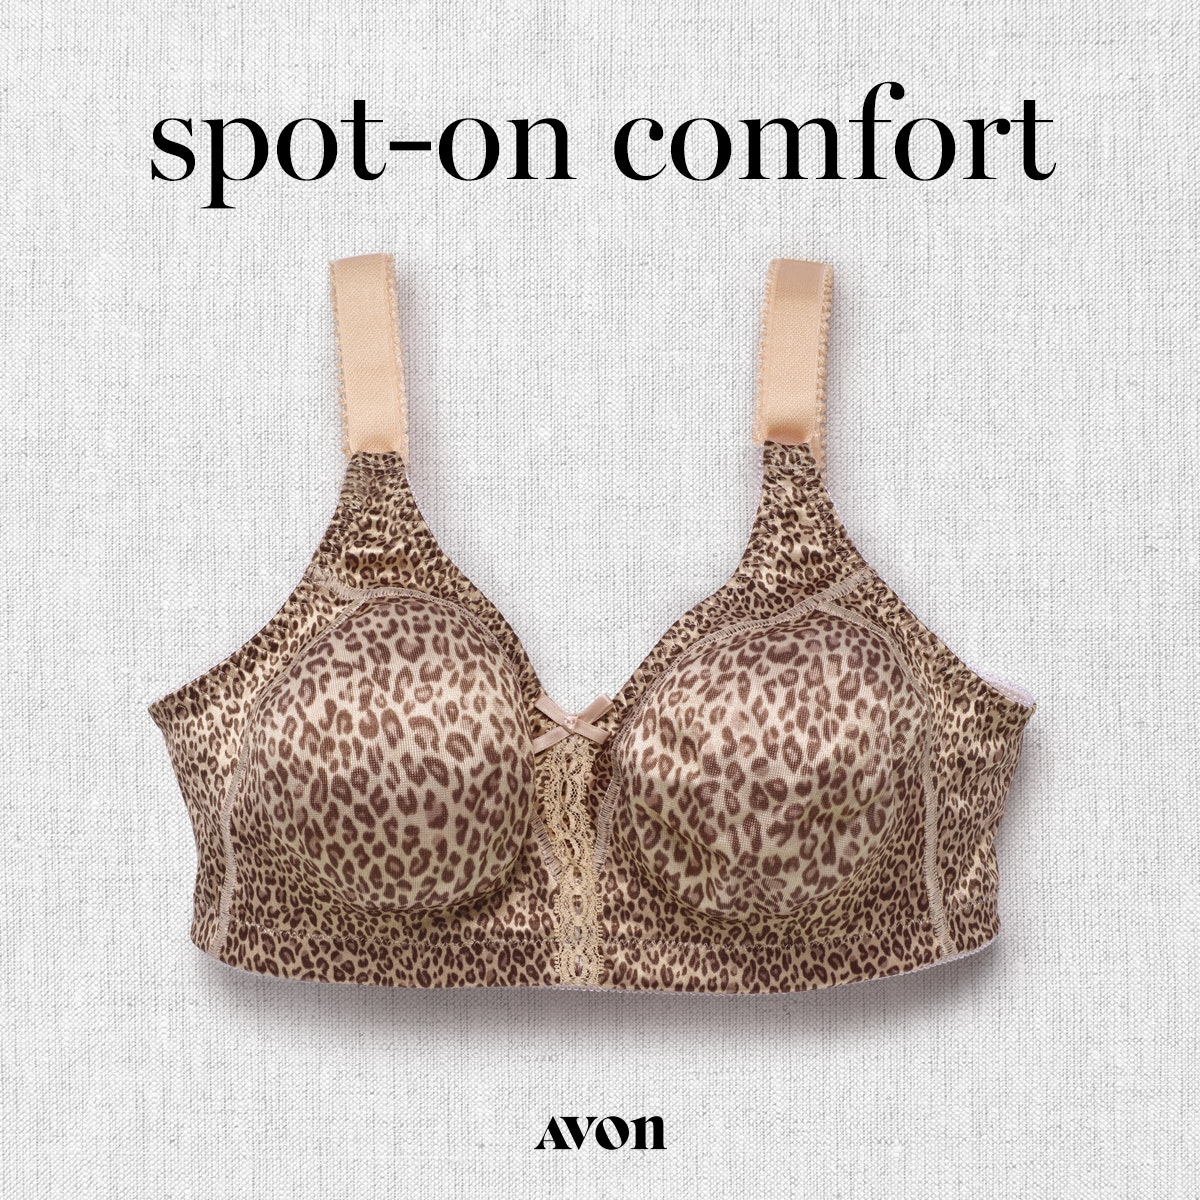 Bali Double Support Wirefree Bra in Sexy Animal Print. https://www.avon.com/brochure?rep=mybeauty 2 for $50.00 page 177